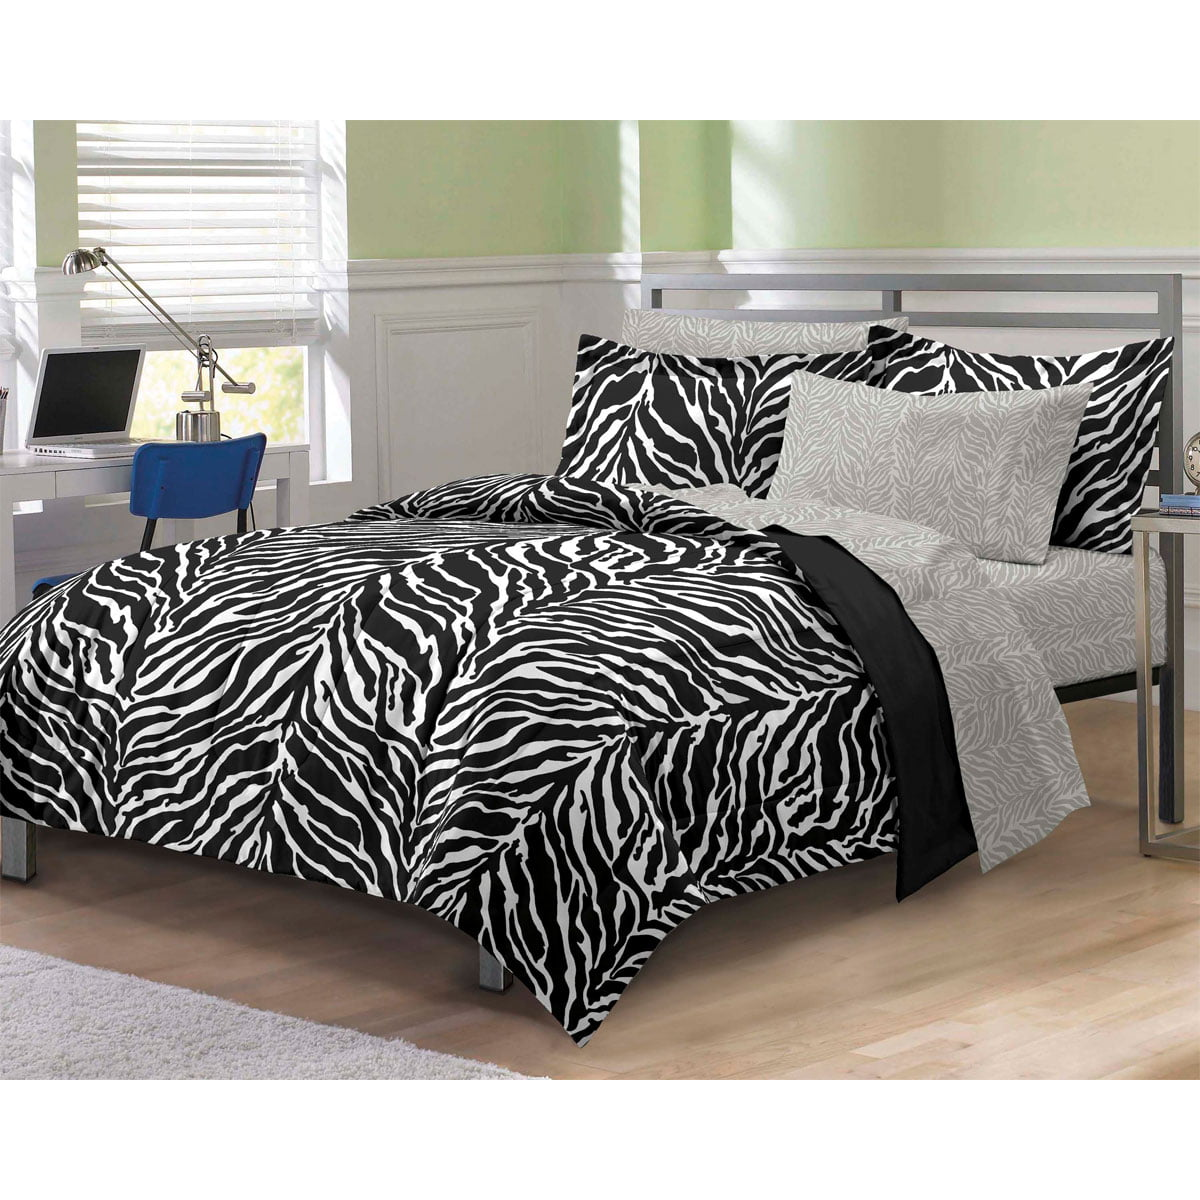 Bed sheet set black and white - My Room Zebra Complete Bed In A Bag Bedding Set Black White Walmart Com